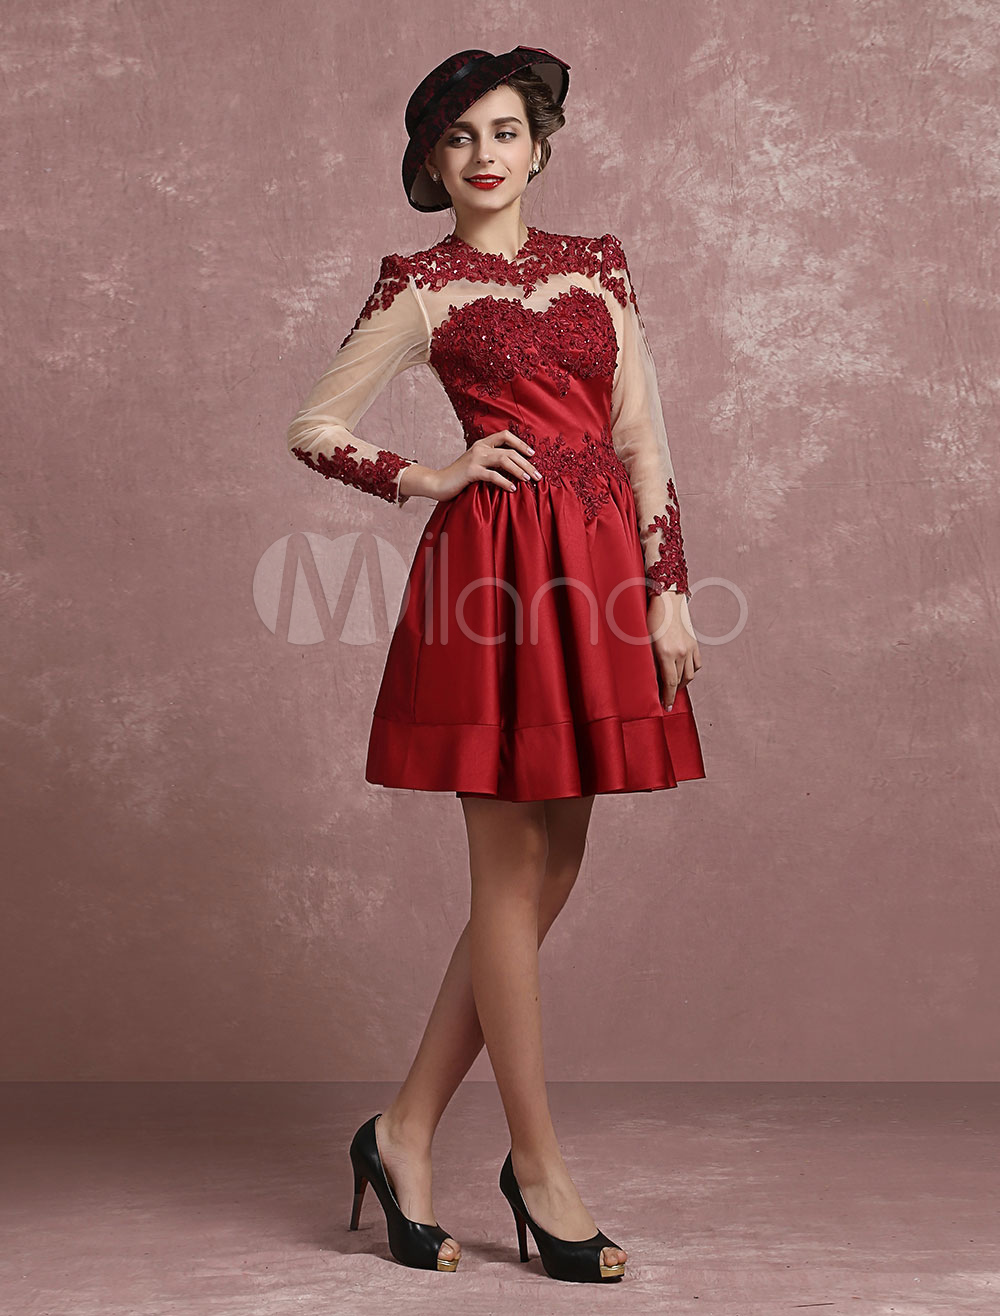 Satin Homecoming Dress Vintage Illusion Lace Applique Beaded Cocktail Dress Burgundy Jewel Long Sleeve Pleated A Line Short Party Dress (Wedding) photo